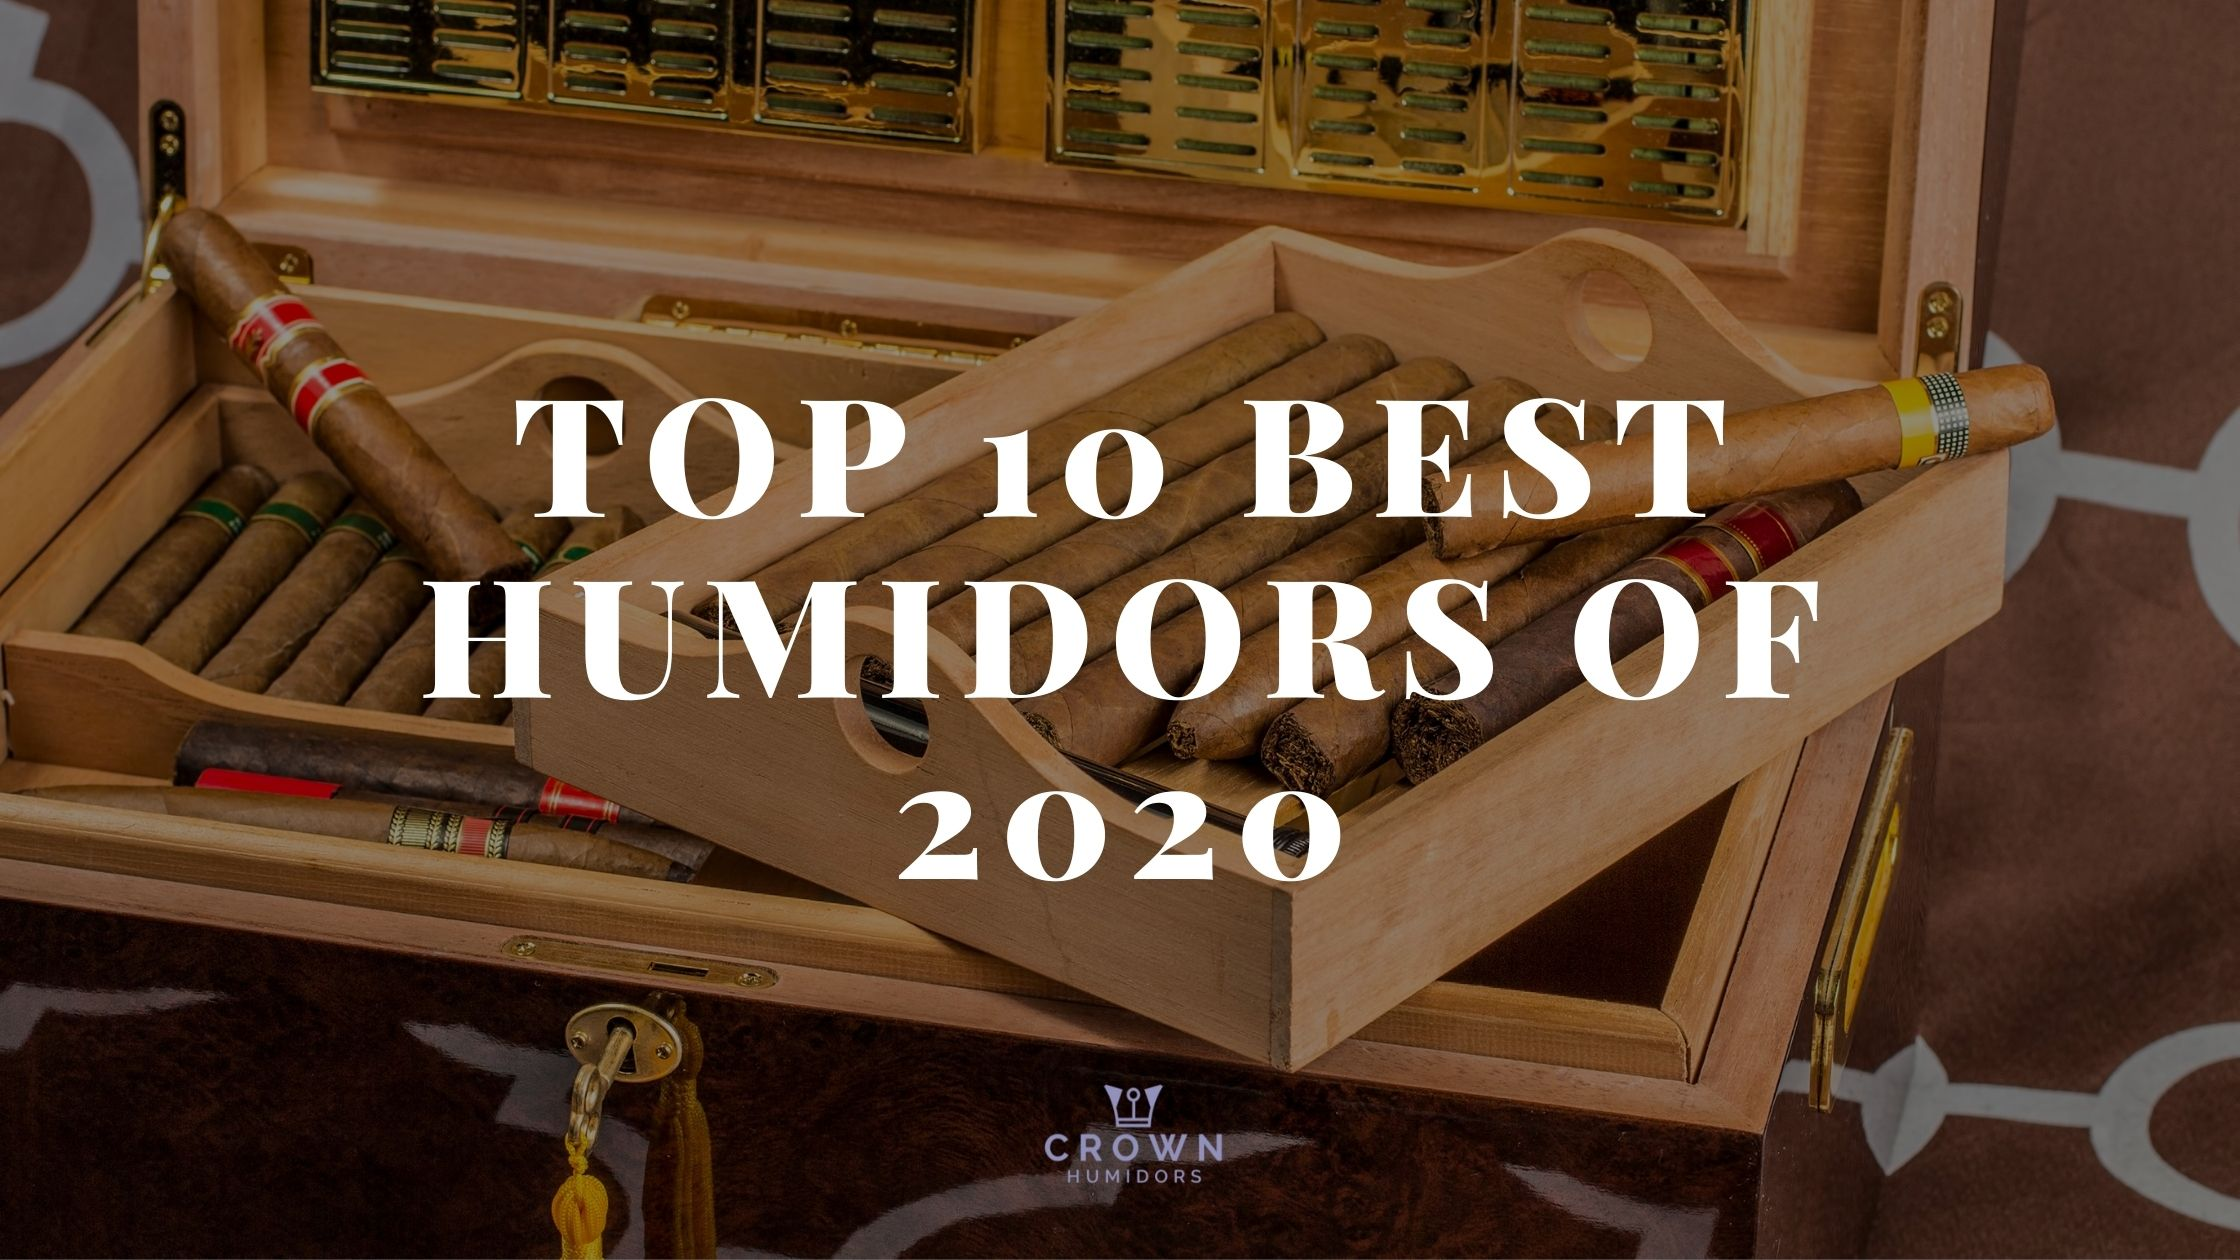 Top 10 Best Humidors of 2020